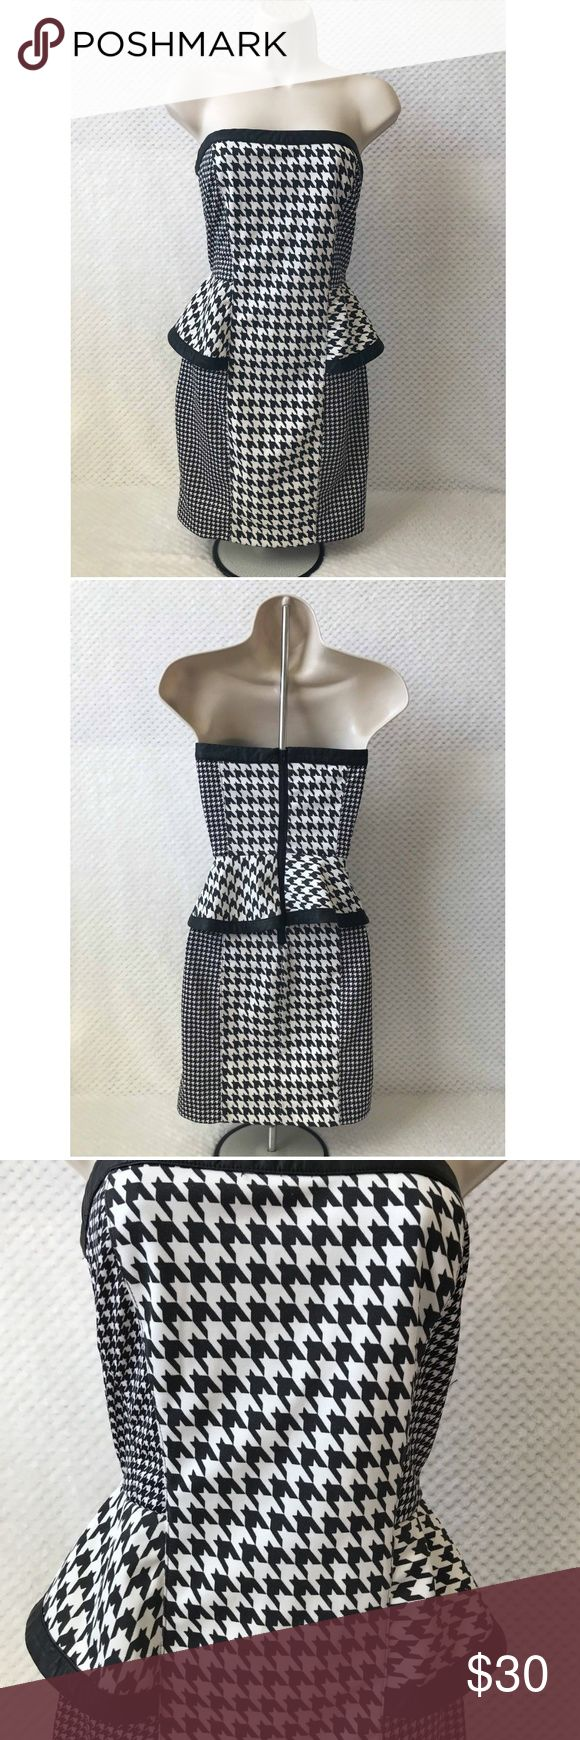 NEW Do & Be Black / White Dress Houndstooth Design You are purchasing a NEW Do & Be Black / White Dress Design NWT  Perfect for casual wear or the night out! Very Sexy!  Size: Medium / Med / M Color: Black and White Brand: Do Be / Do & Be Condition: NEW / NWT  Beautiful Black & White Houndstooth Design  You can't go wrong with this NEW Do & Be Black / White Dress Design NWT!  All offers considered!! Do & Be Dresses Mini